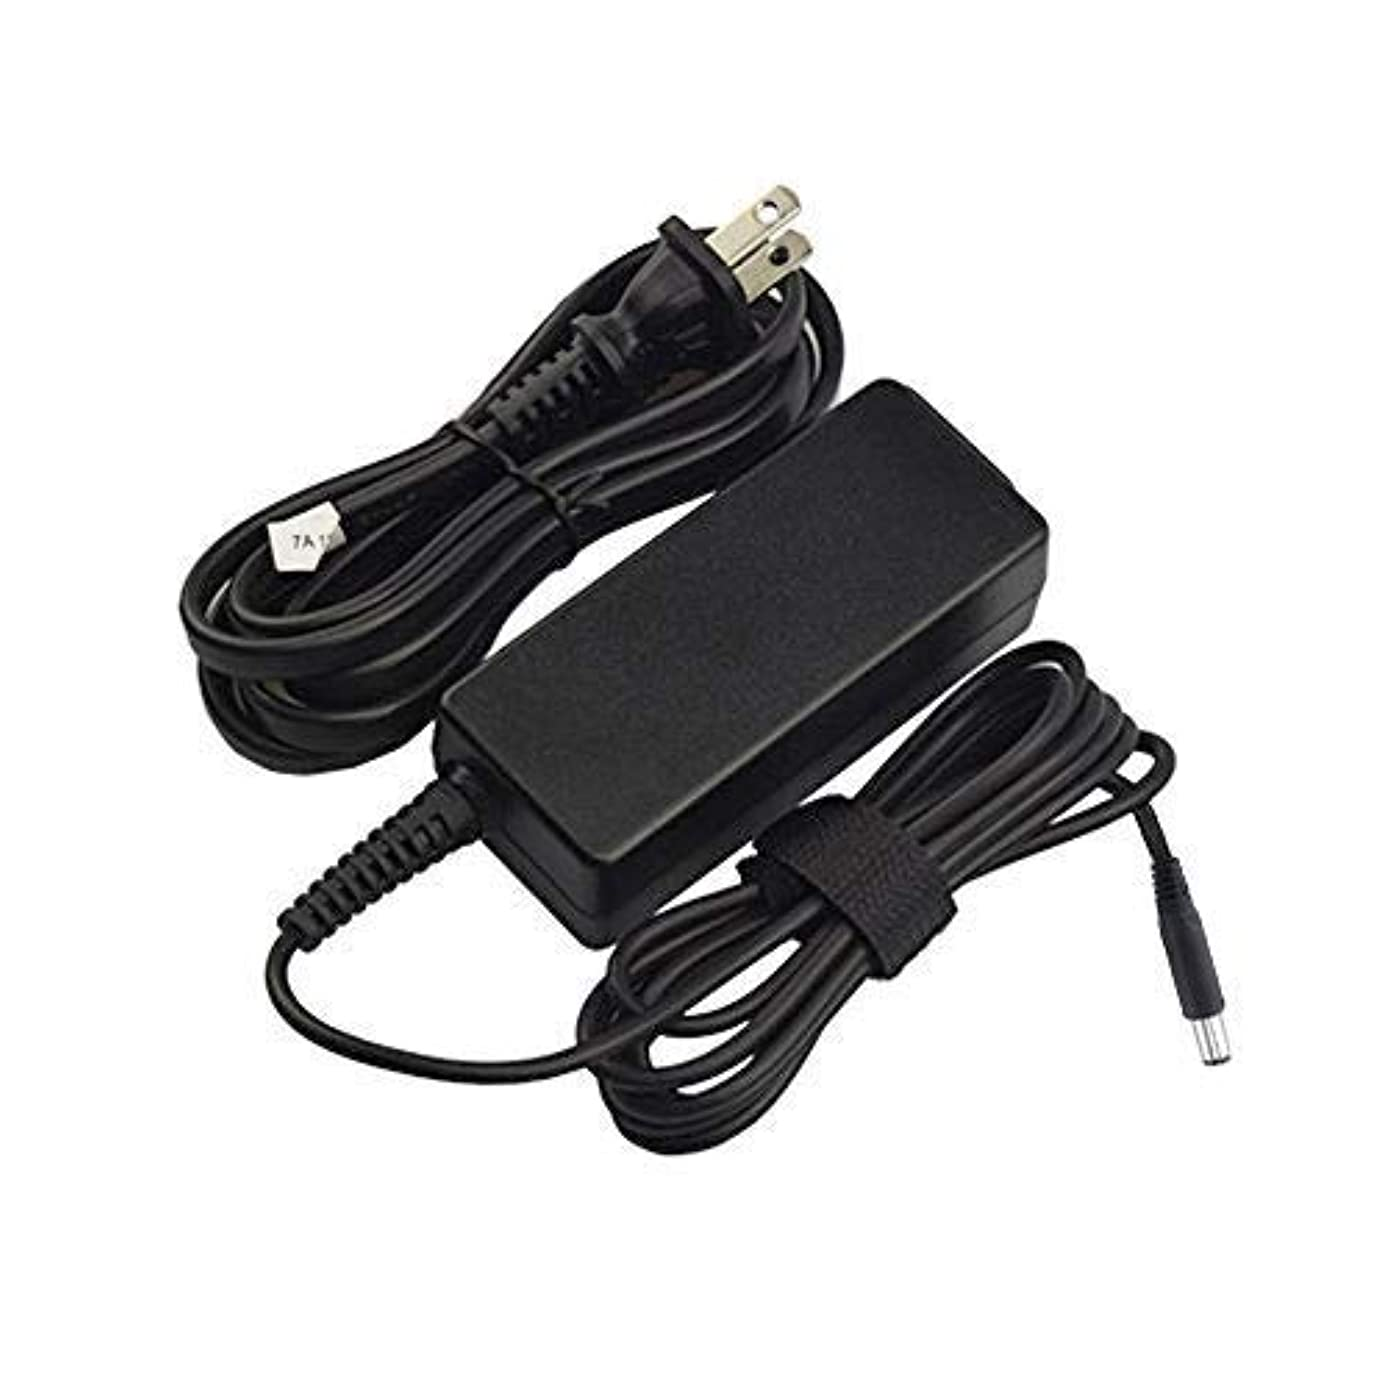 [UL Listed] Charger Fit for HP ProBook 640 G1 Notebook PC Laptop Power Supply Adapter Cord